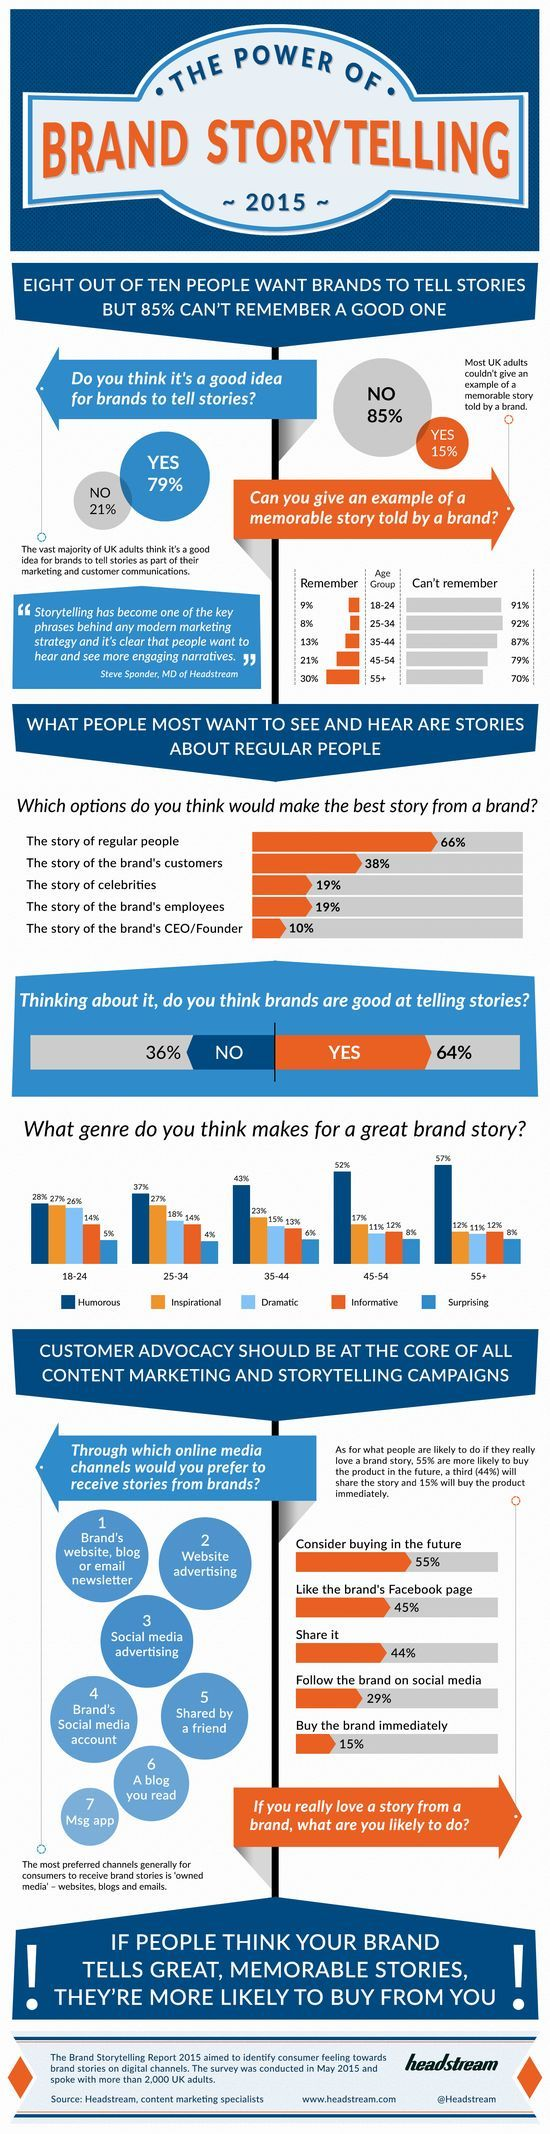 Digital Marketing : The Power Of Brand Storytelling [Infographic] - InfographicNow.com   Your Number One Source For daily infographics & visual creativity